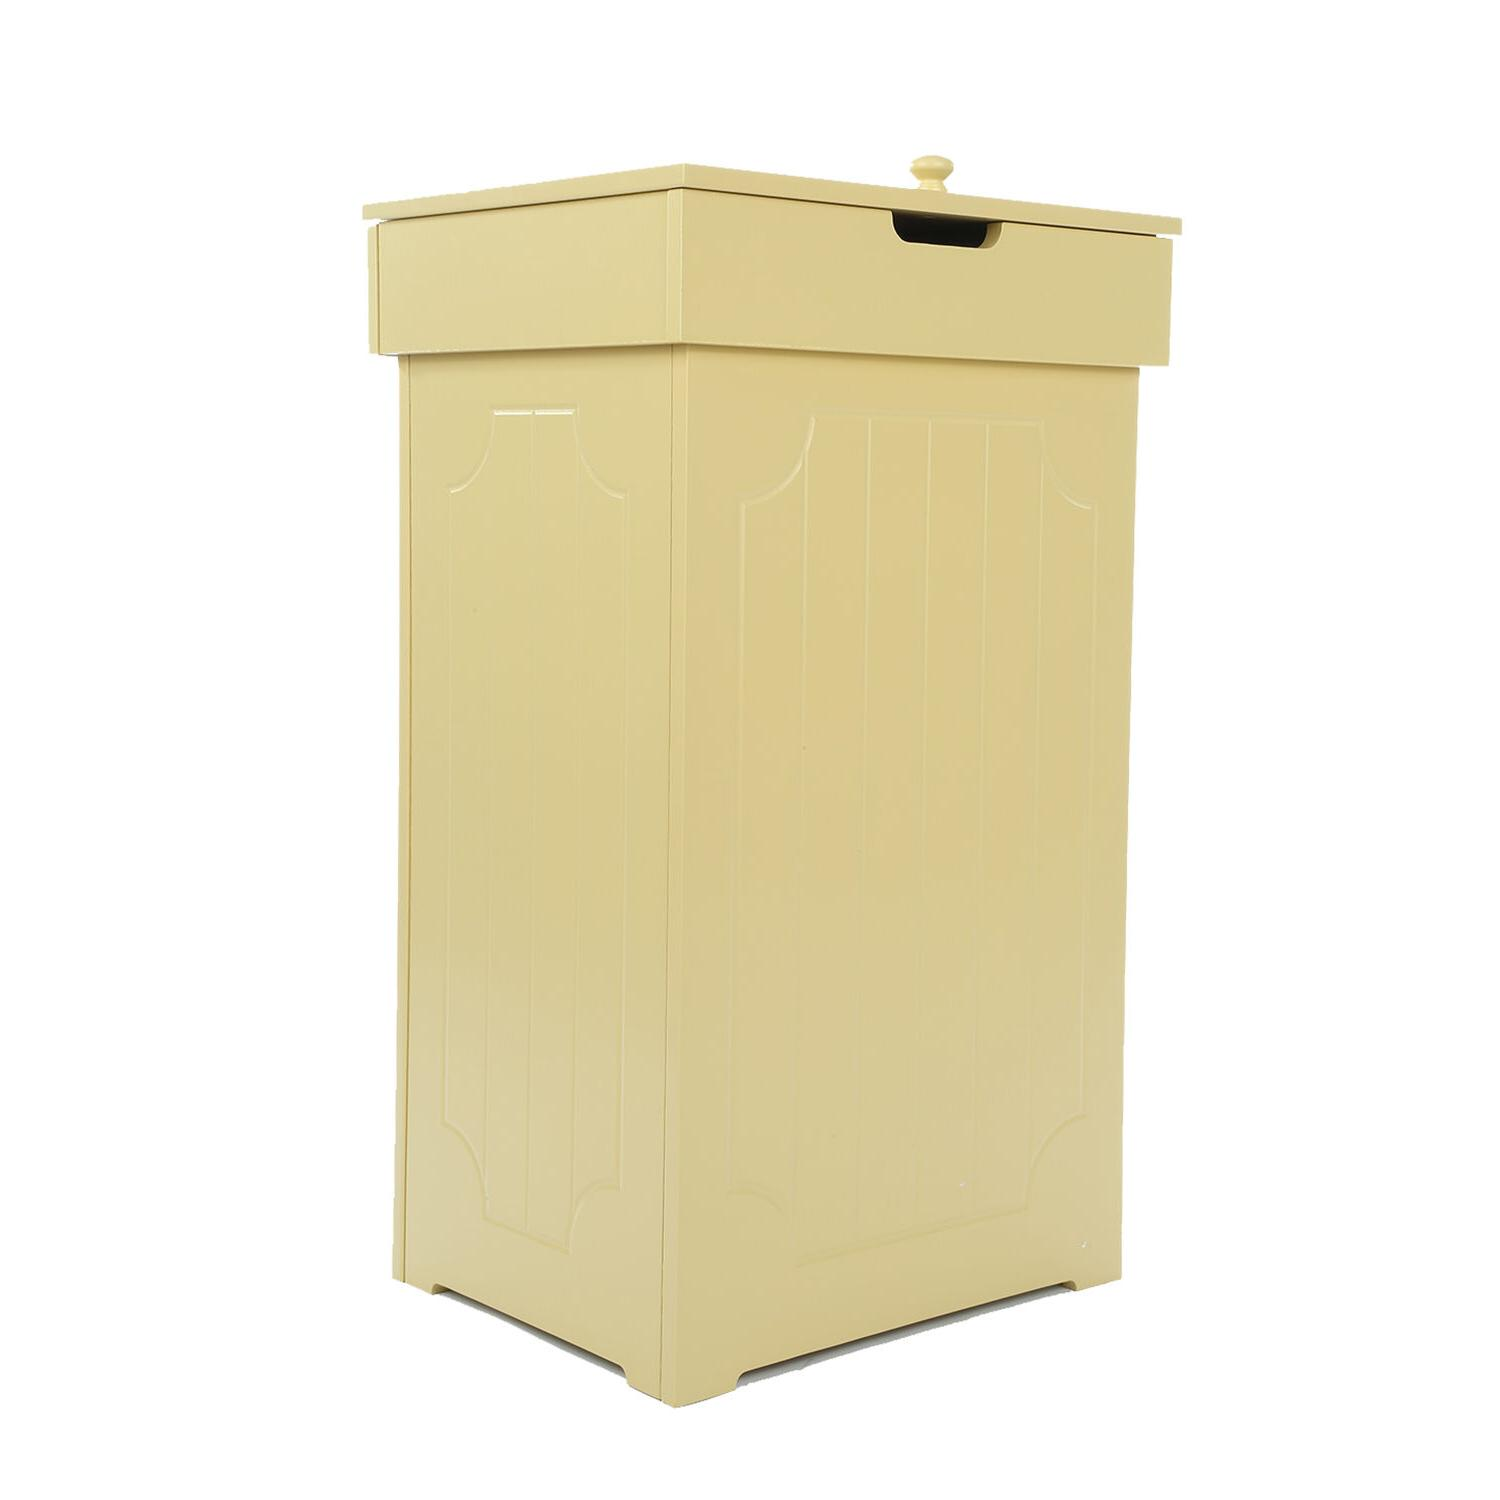 Trash Bin Cabinet Bins Trash Spacesaver